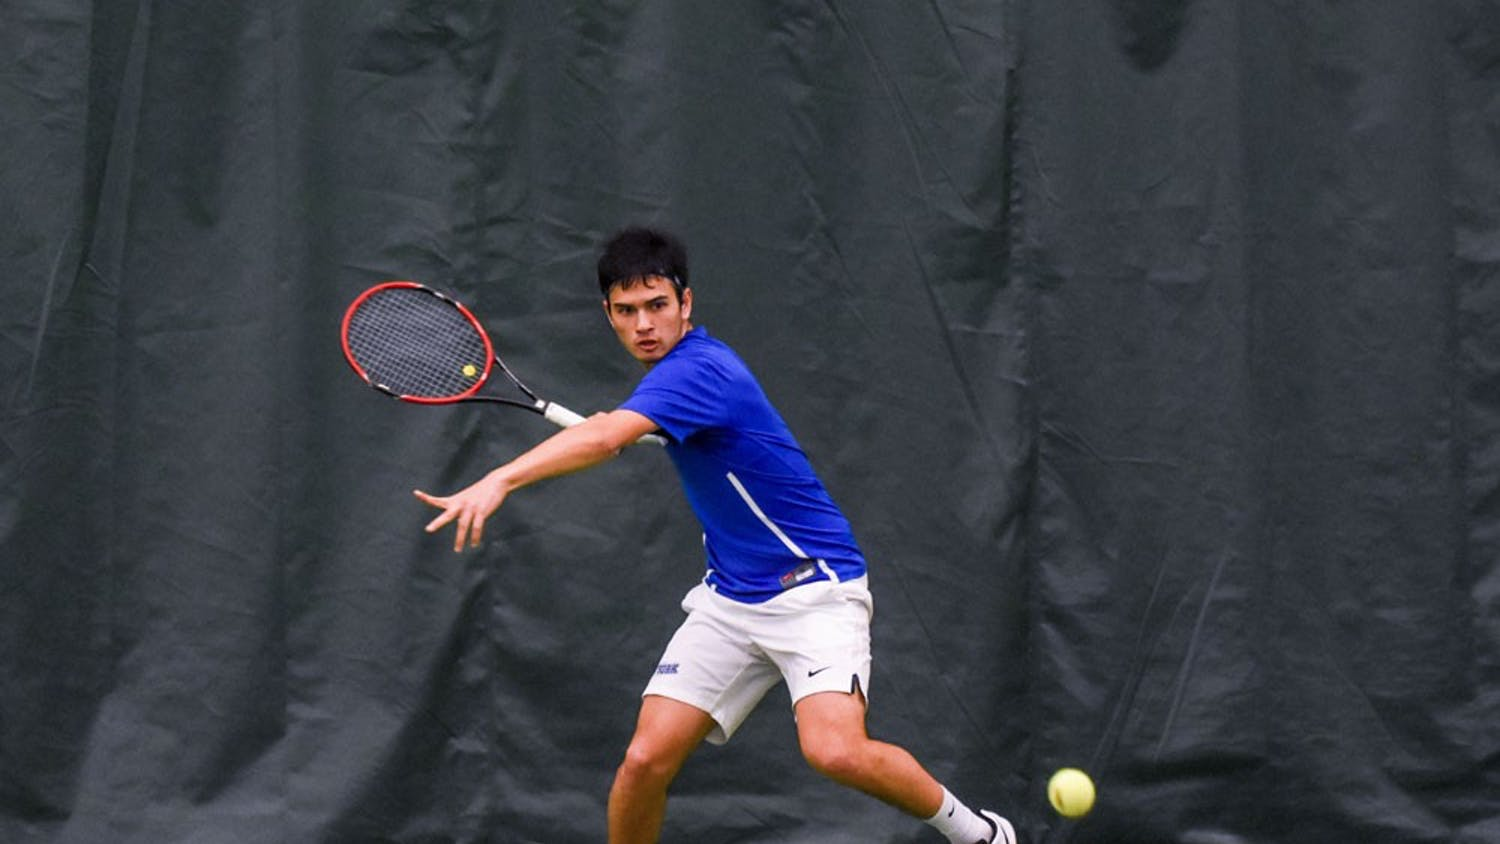 Senior Pablo Alvarez gets ready to return a ball during a match at the Miller Tennis Center. The men's tennis team is preparing for its regular season finale before the MAC Tournament.